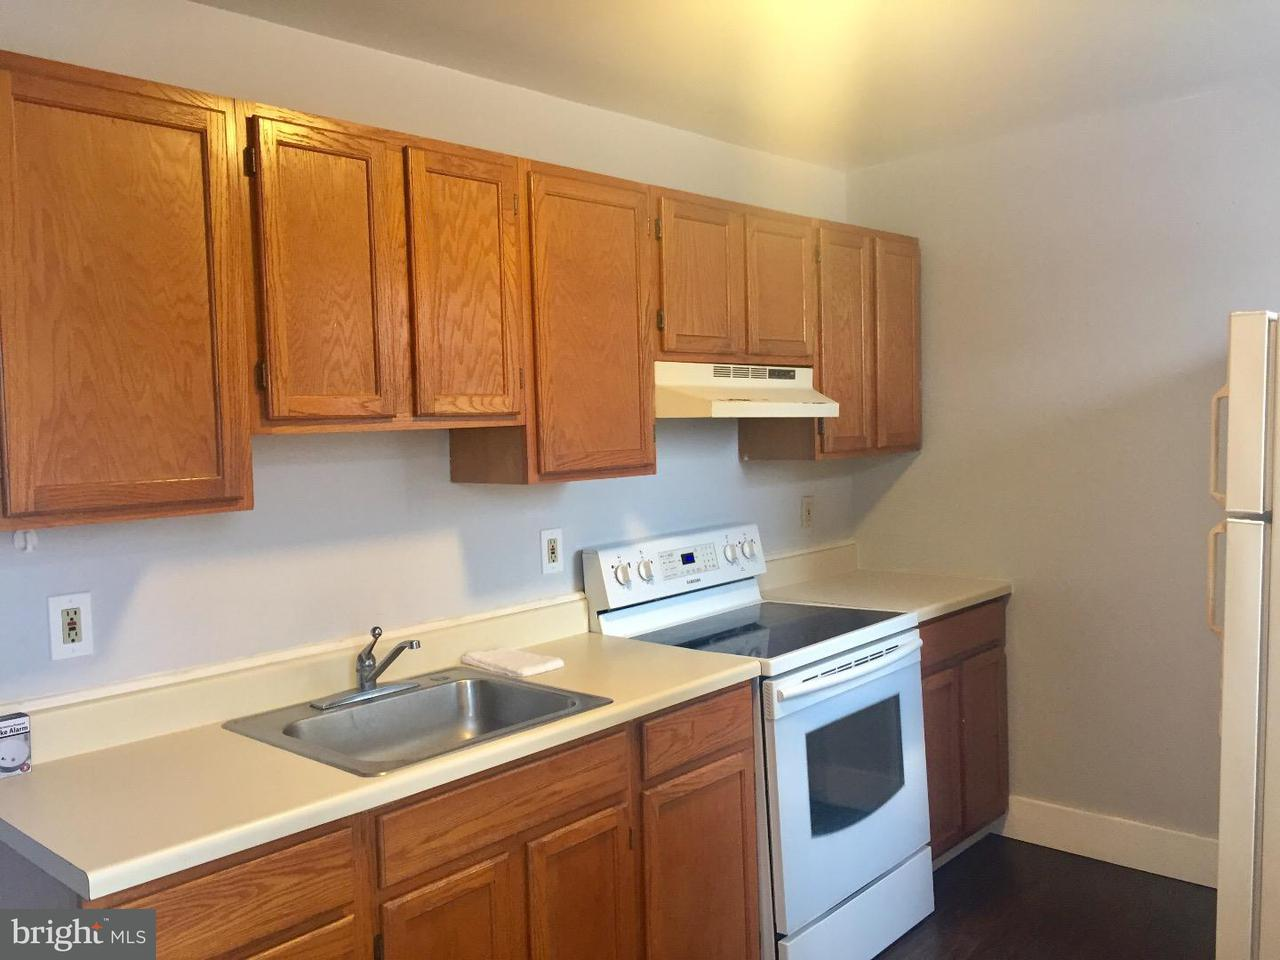 Single Family Home for Rent at 22 E SELLERS Avenue Ridley Park, Pennsylvania 19078 United States